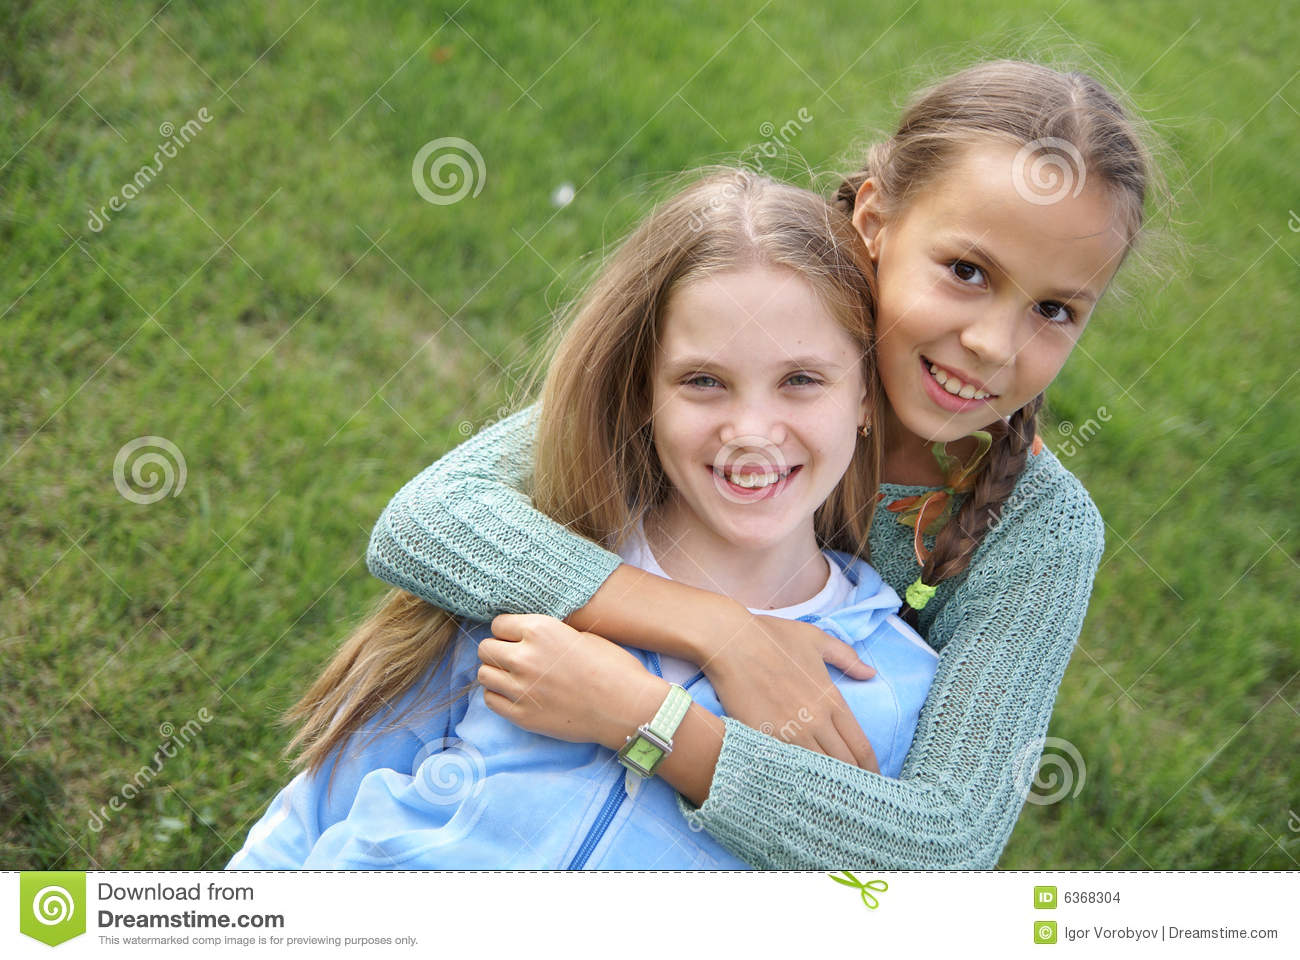 Smiling preteen girls outdoors on green grass background.